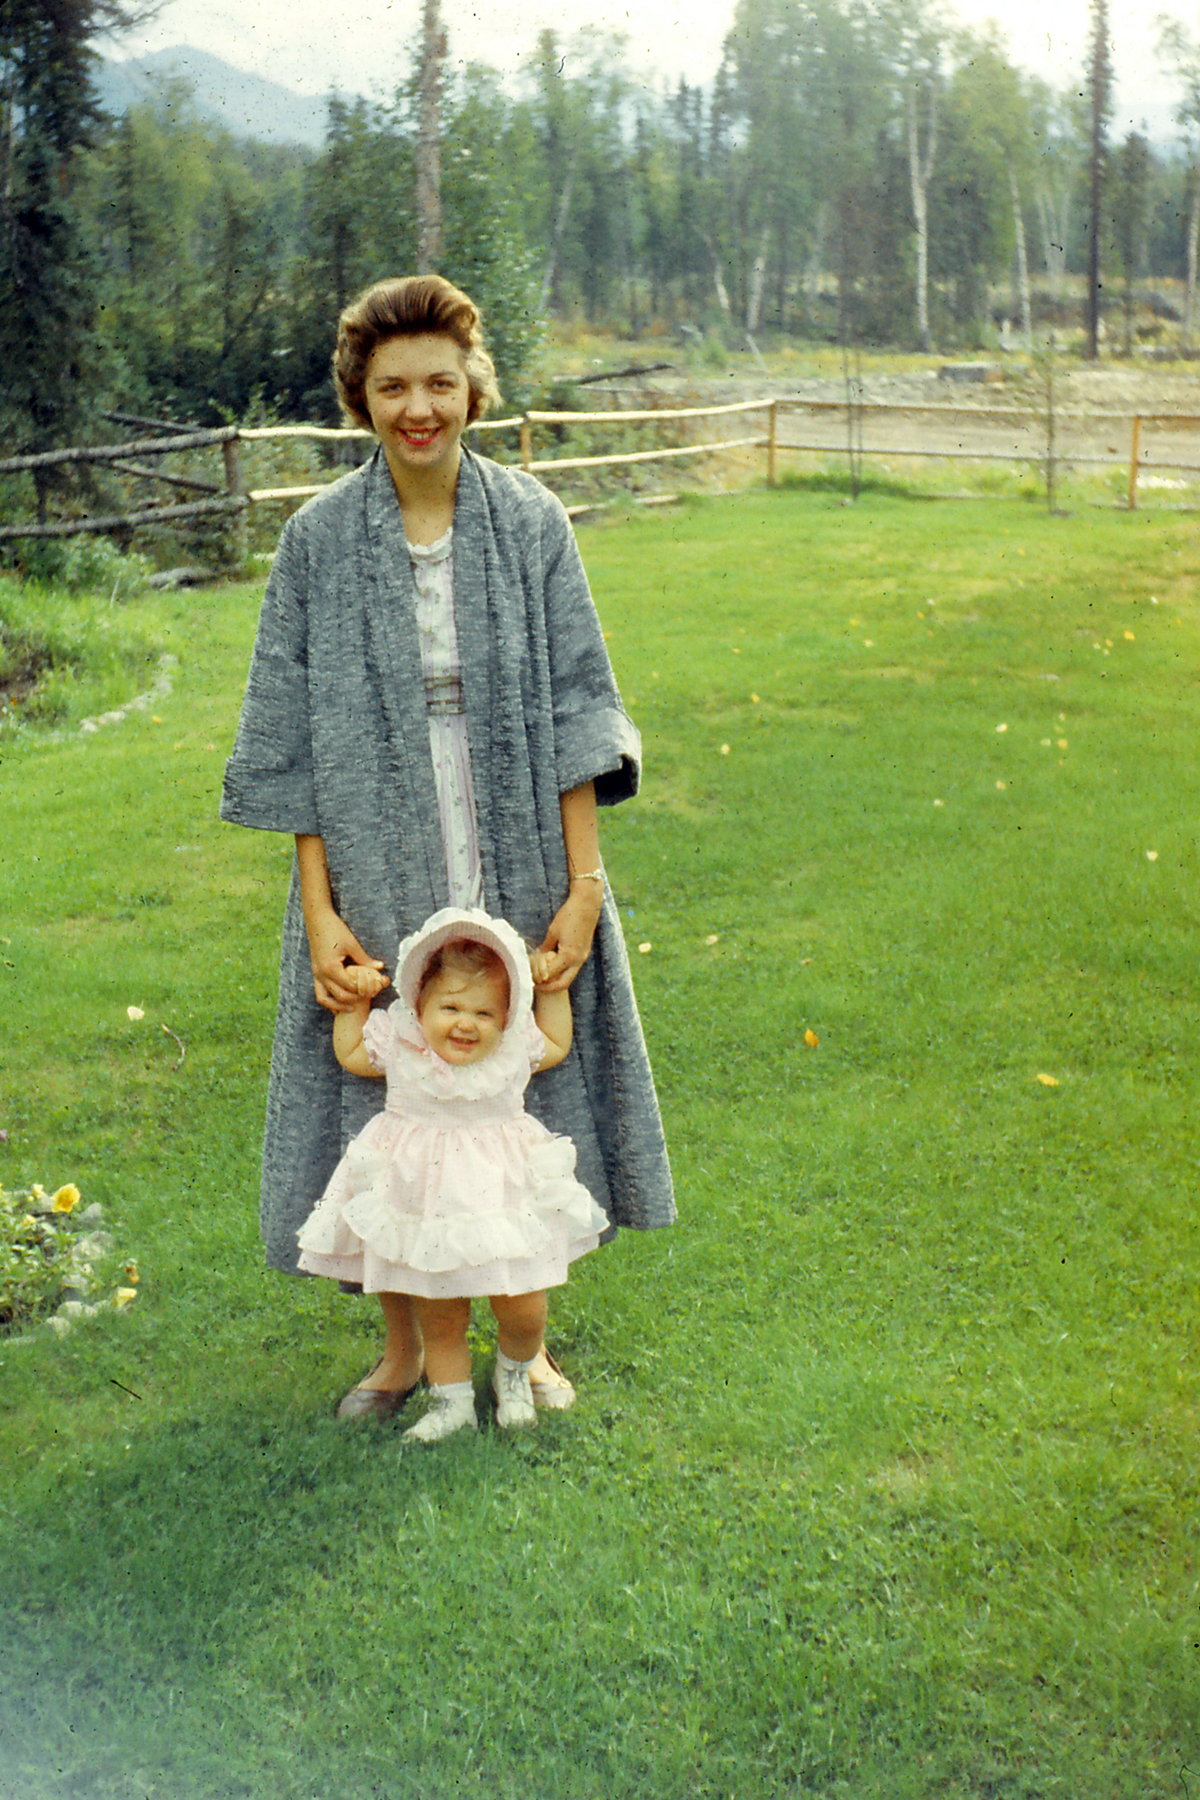 My mother Julie and grandmother Joan.